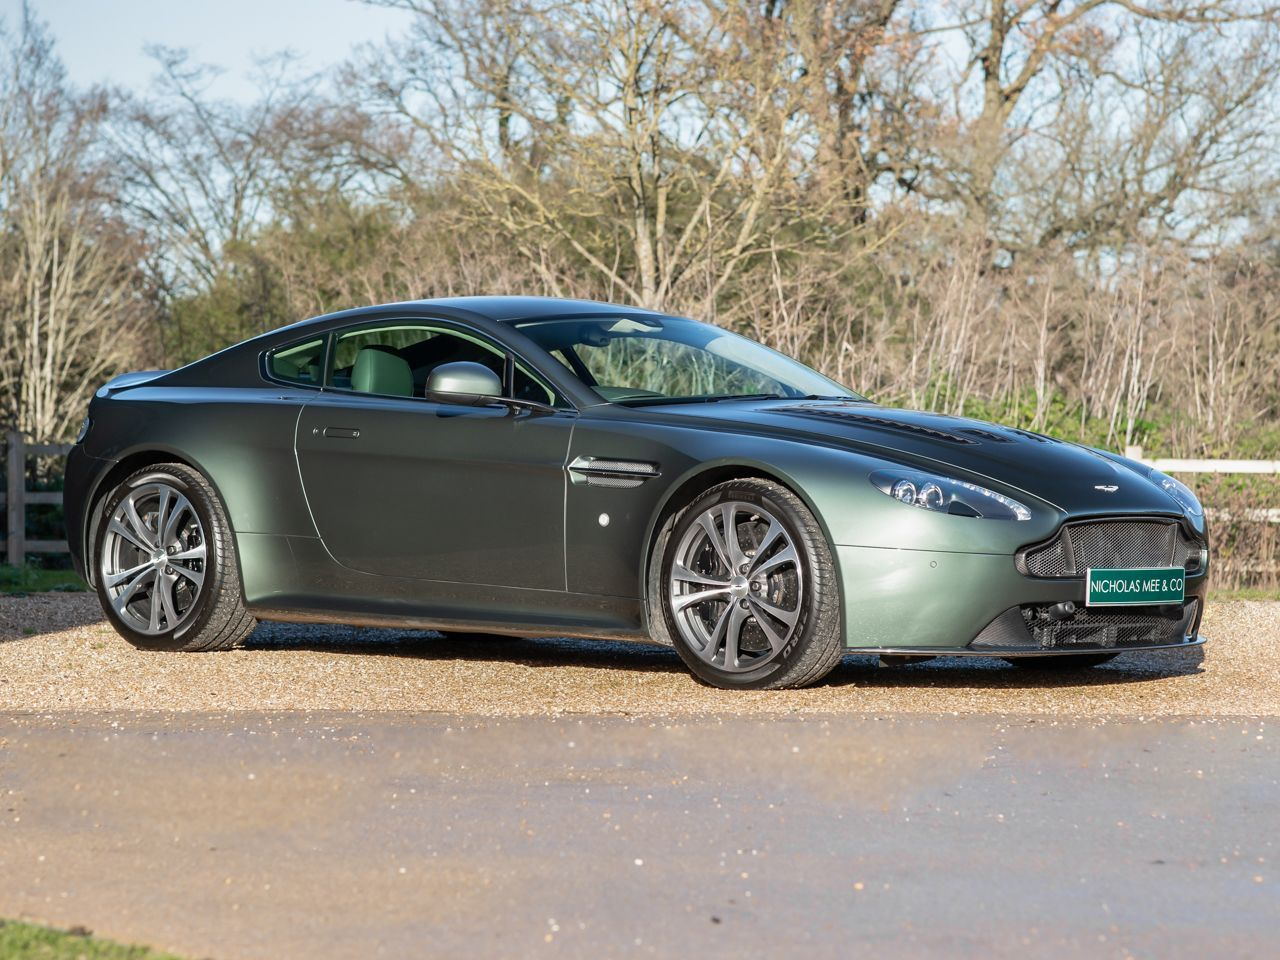 Aston Martin Vantage S Used Cars For Sale Autotrader Uk